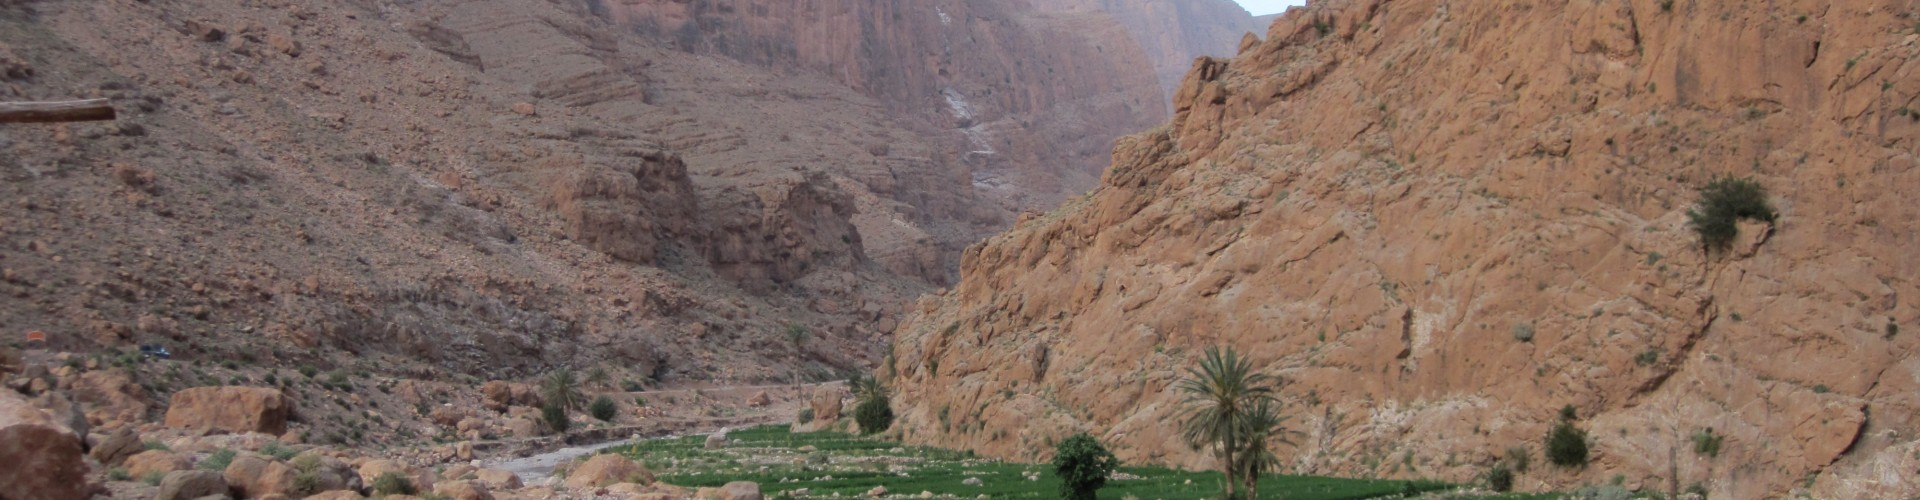 Morocco - Skoura & the Valley of the Kasbahs - Todra Gorge